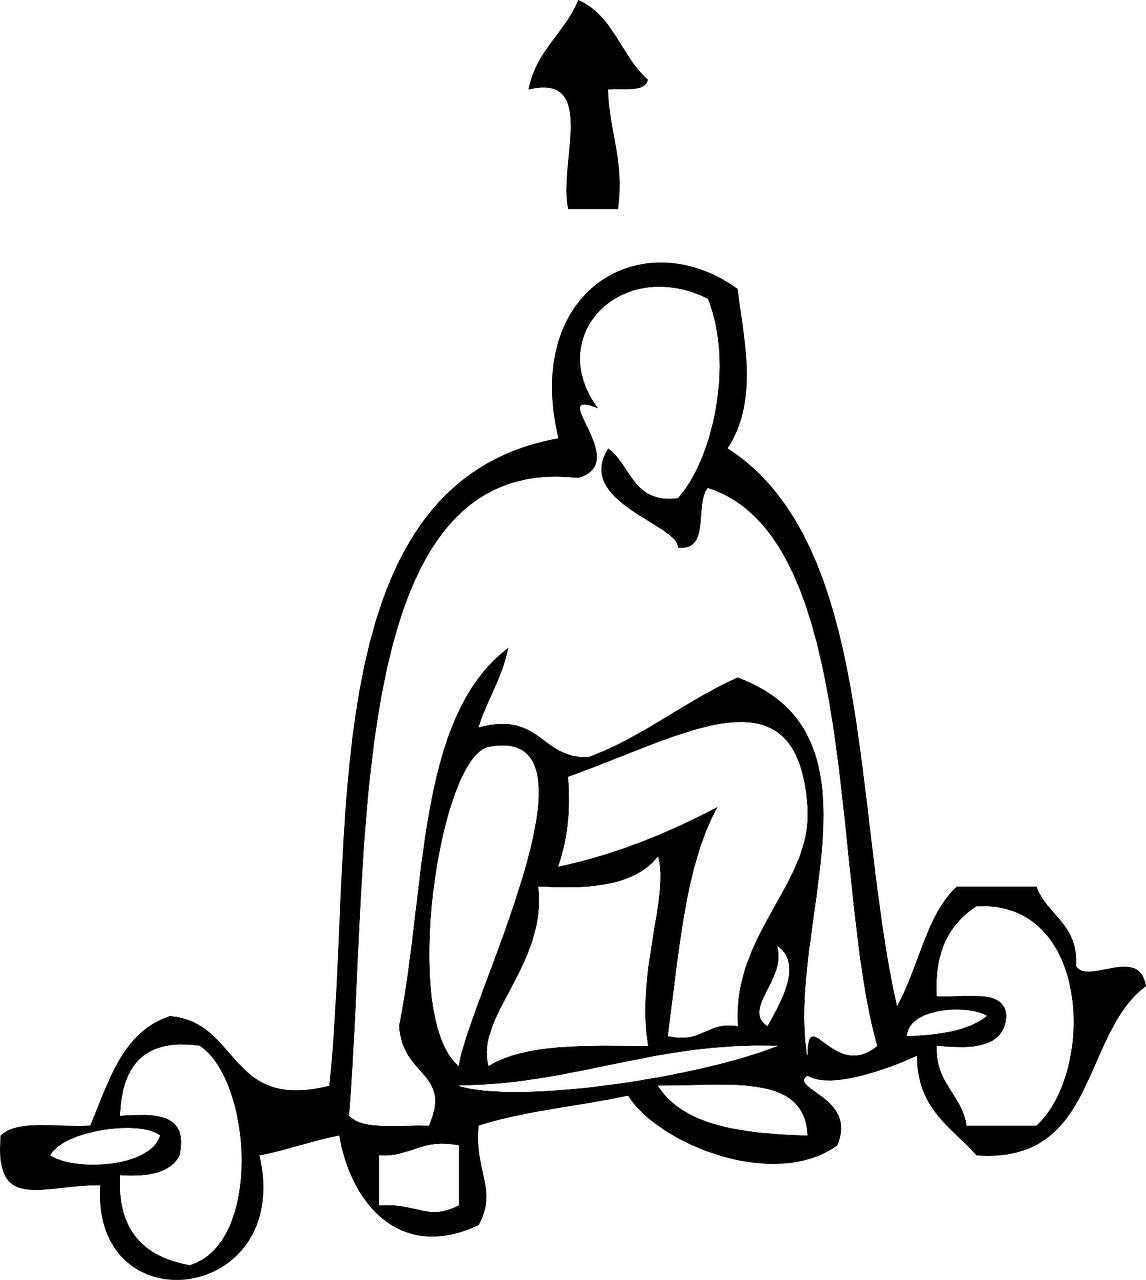 weightlifting weight lifter free photo